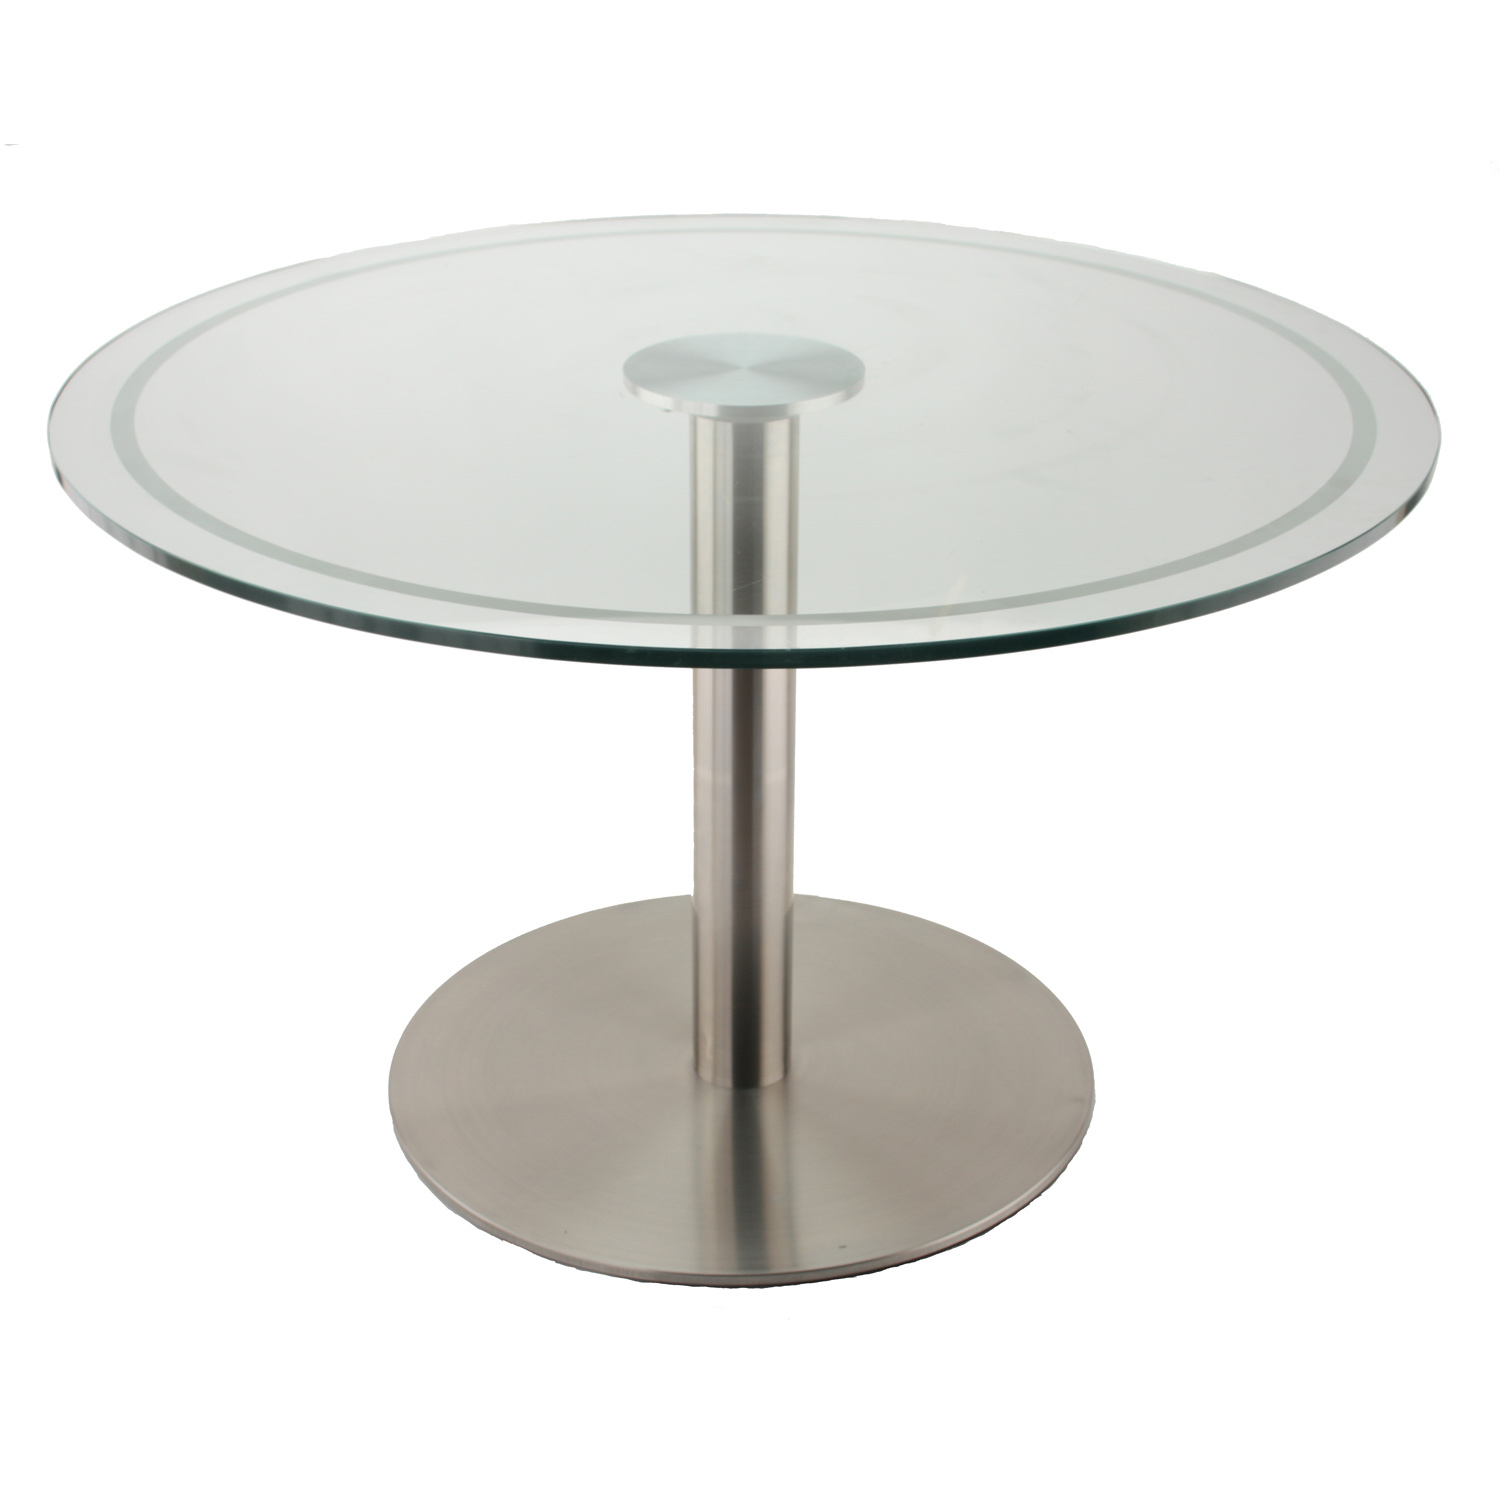 RFL750 Table Base with Glass Table Top